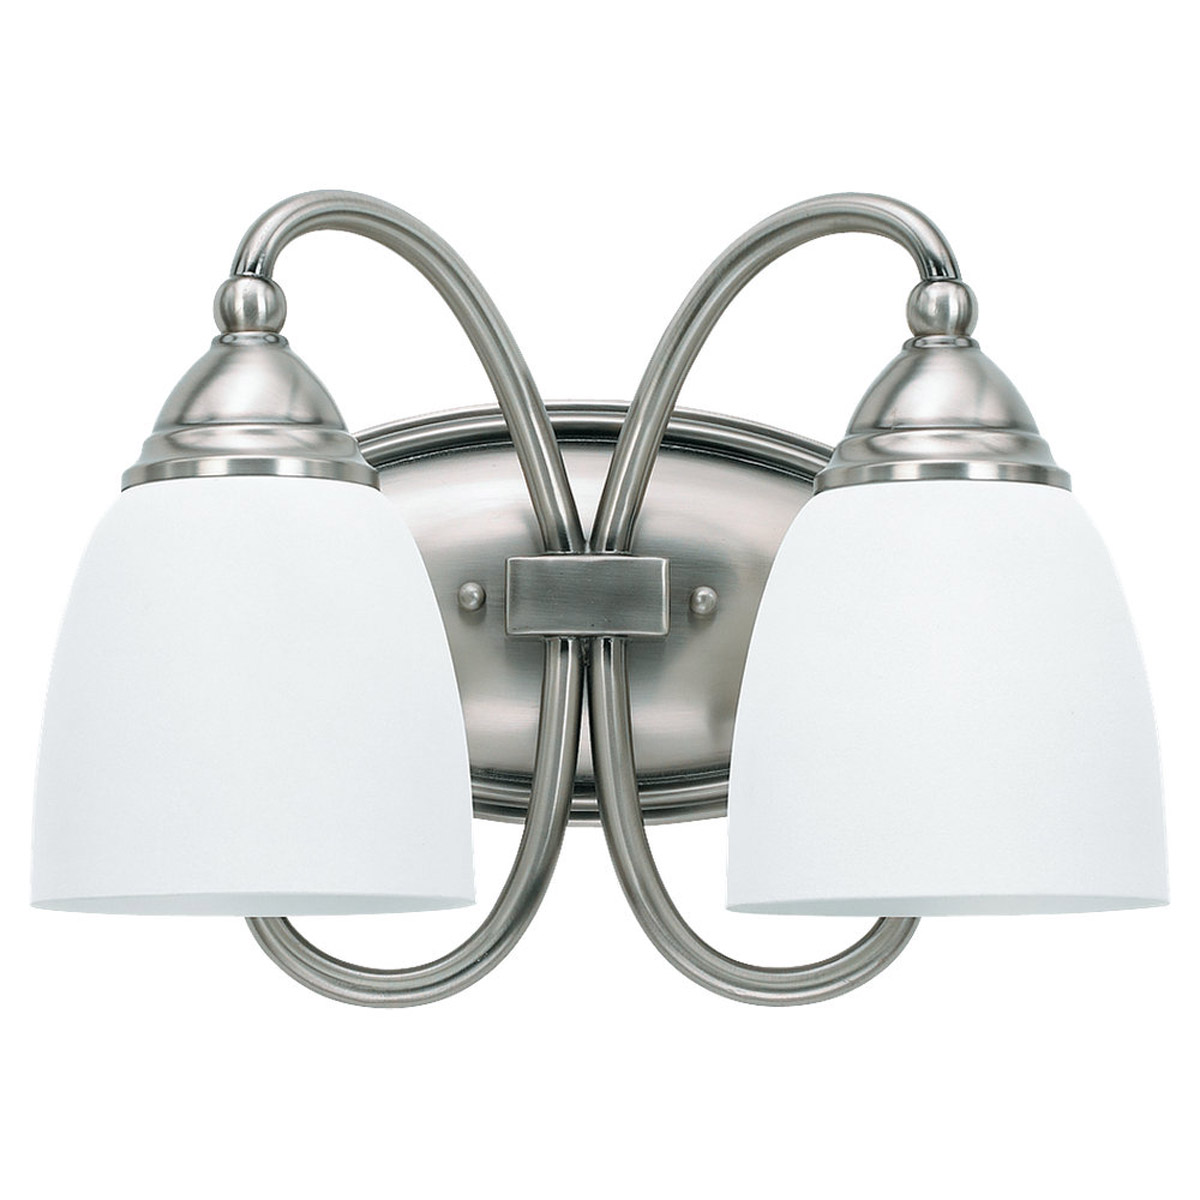 Sea Gull Lighting Montclaire 2 Light Bath Vanity in Antique Brushed Nickel 44105BLE-965 photo